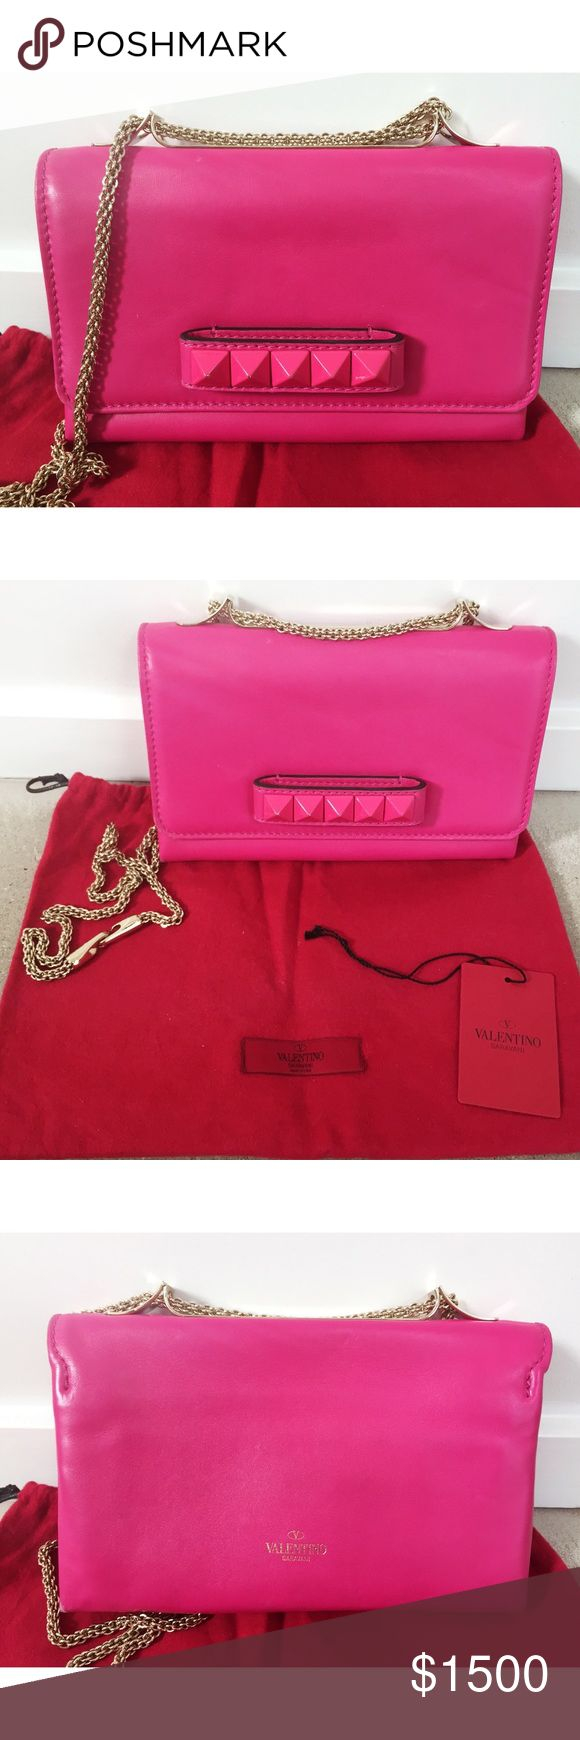 Valentino Garavani Hot Pink Cross Body Bag Hot pink leather cross body purse with stud detail and chain strap that converts so you can wear it long, double it up, or take it off altogether to use the purse as a clutch. Comes with dust bag and tag. Barely used, looks new except for tiny chips in the enamel on the studs. Valentino Garavani Bags Crossbody Bags